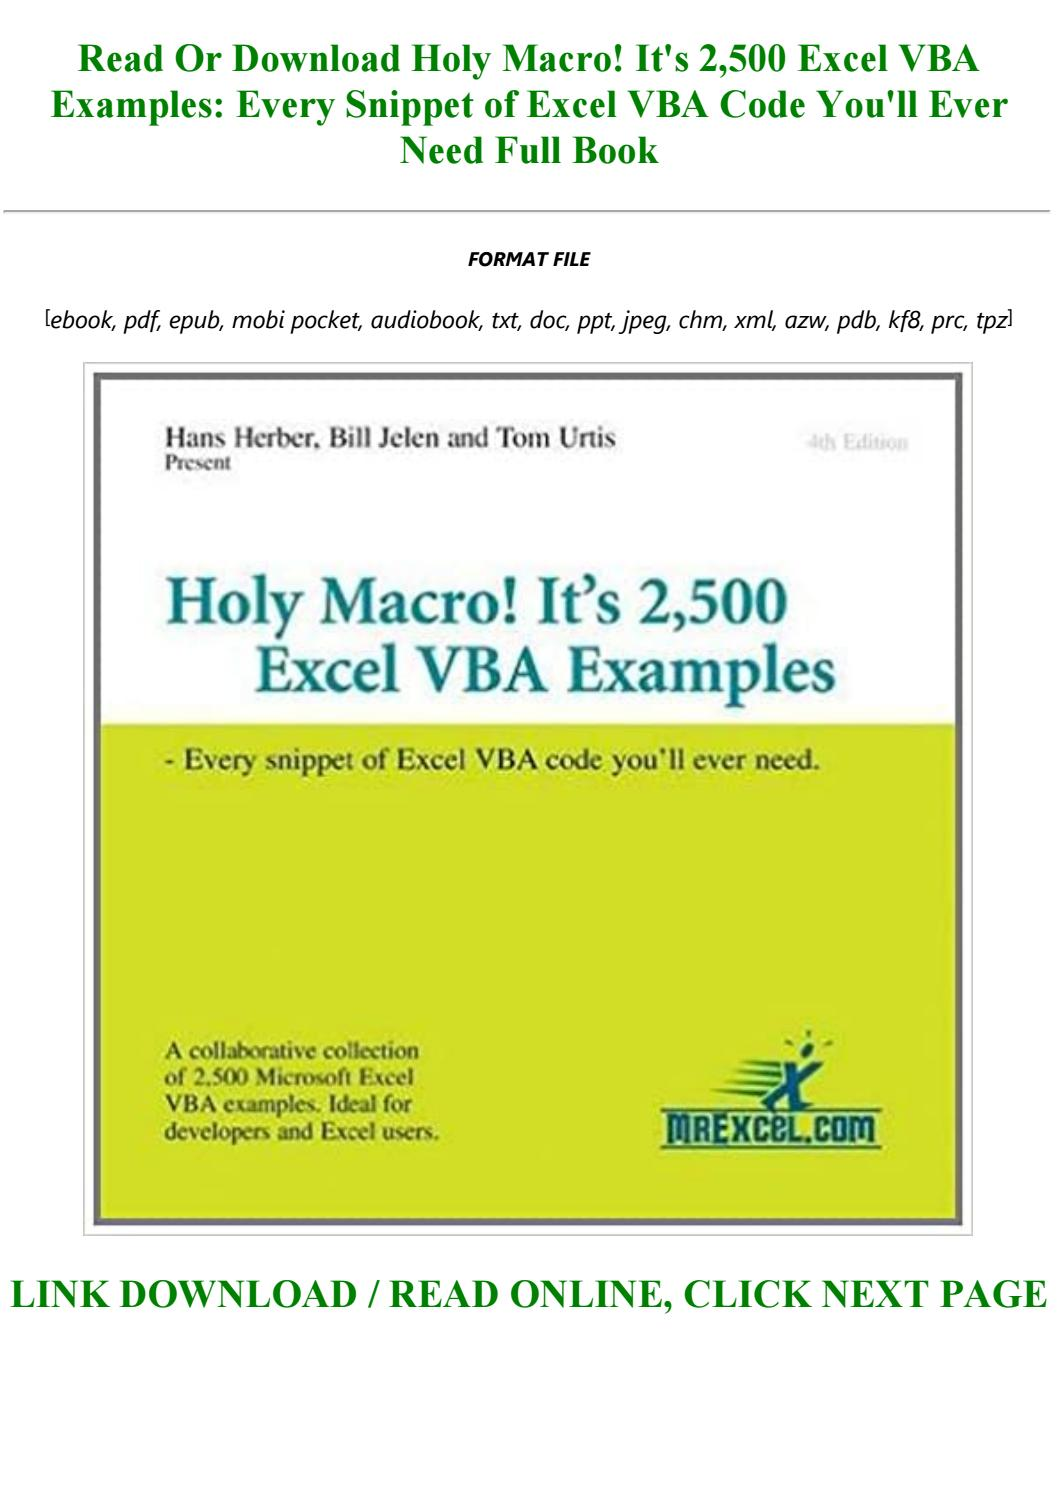 Holy Macro! It's 2,500 Excel VBA Examples: Every Snippet of Excel VBA Code  You'll Ever Need by camronoke213 - issuu